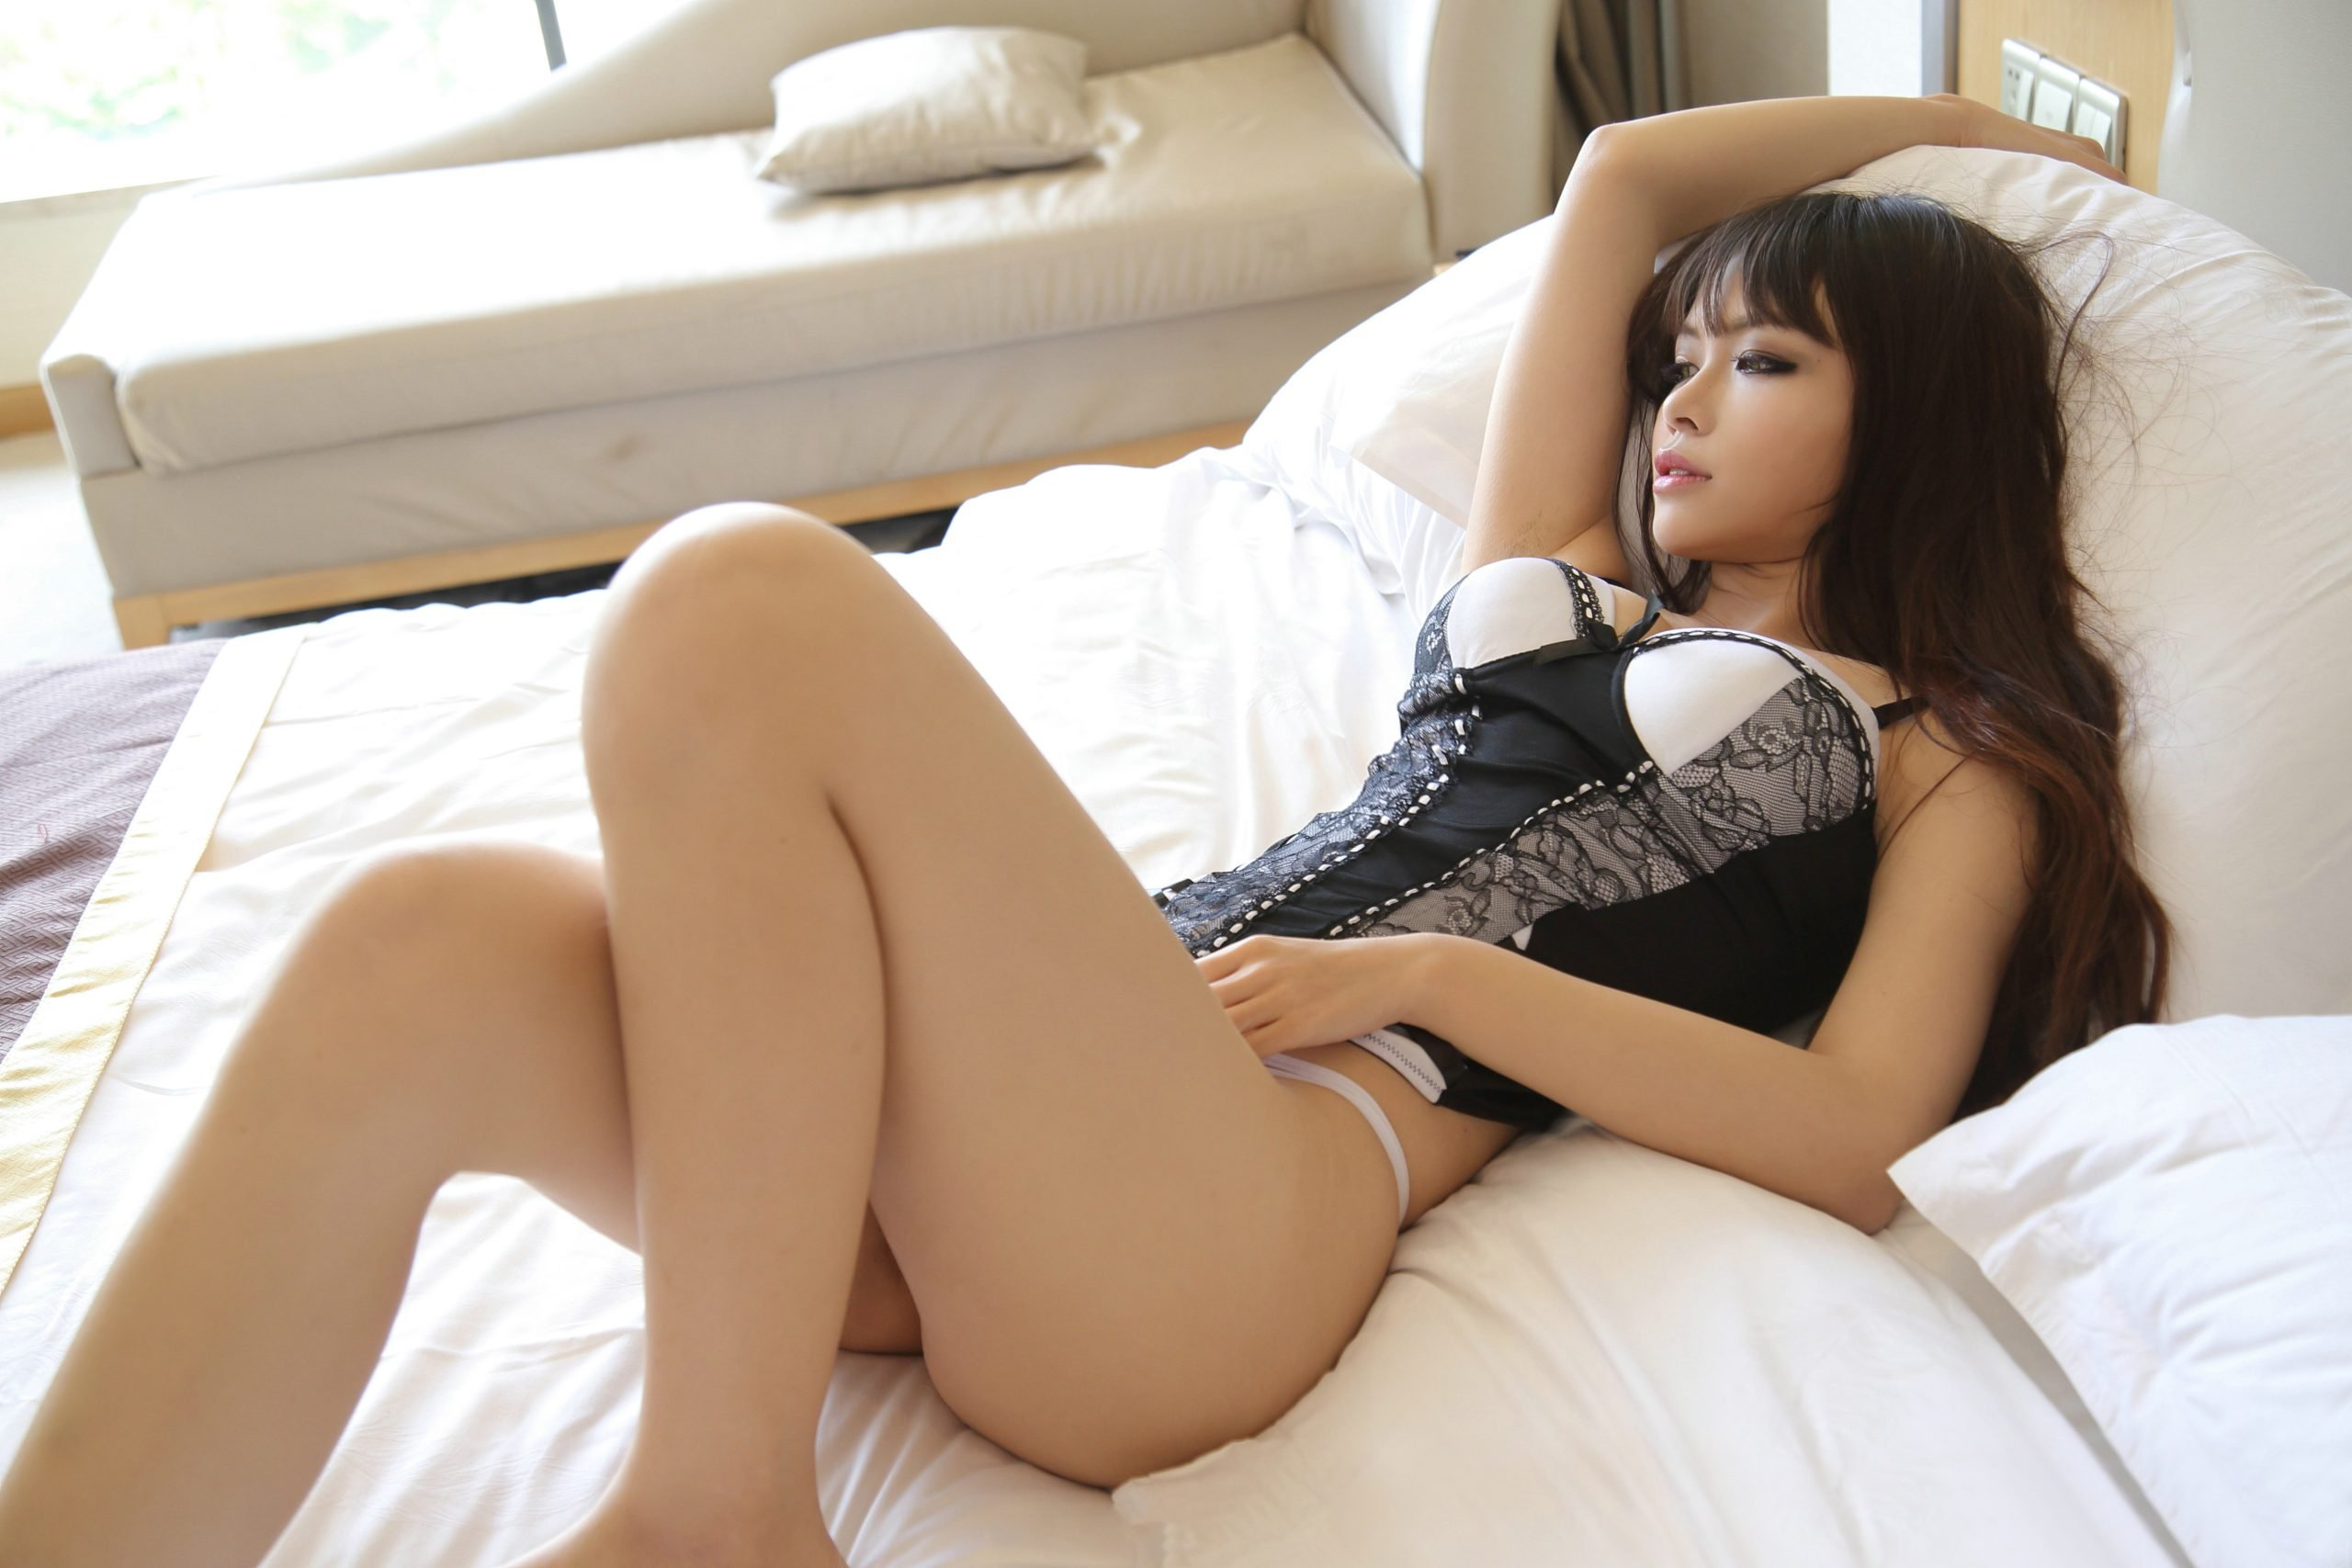 Beautiful,Asian,Sexy,Underware,Girl,Model